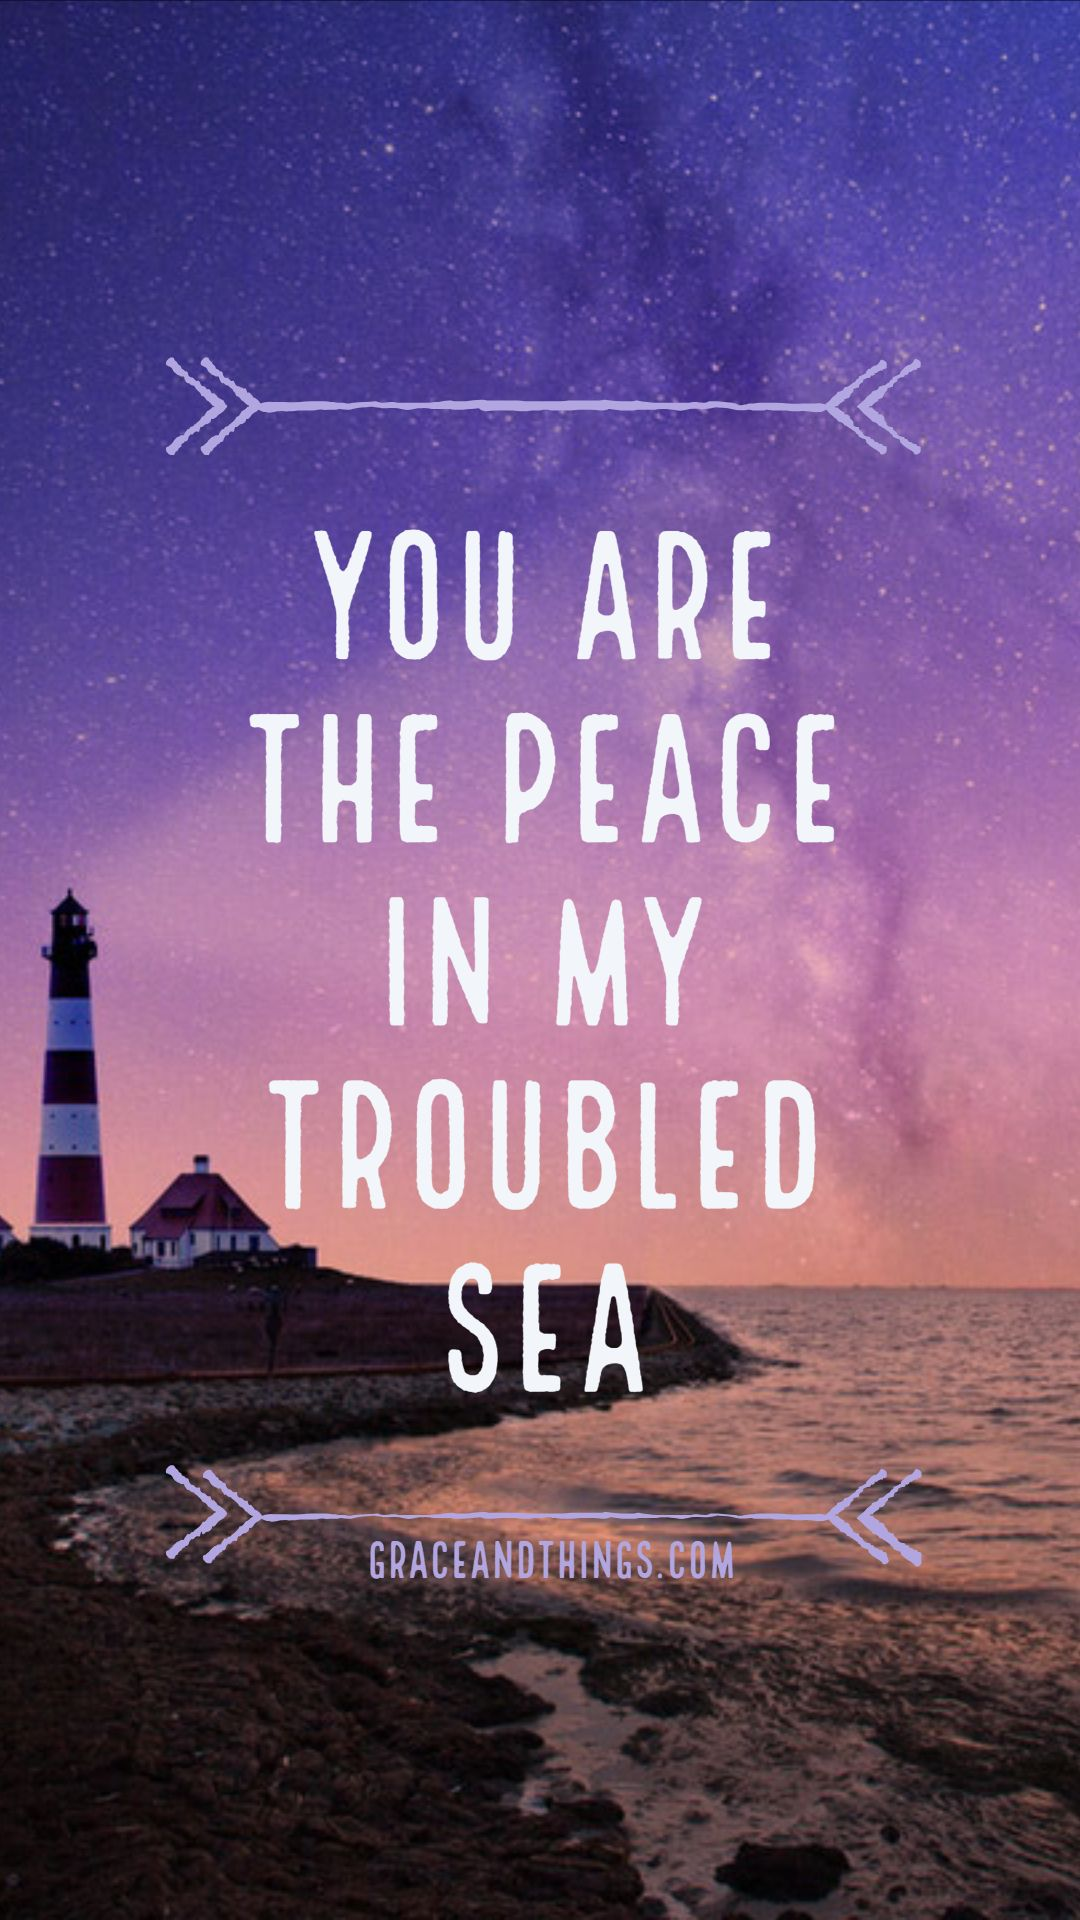 Rendcollective Lighthouse Peace Iphone Quote Inspiration Wallpaper Smartphone Sea Oce Bible Verse Wallpaper Wallpaper Quotes Free Christian Wallpaper